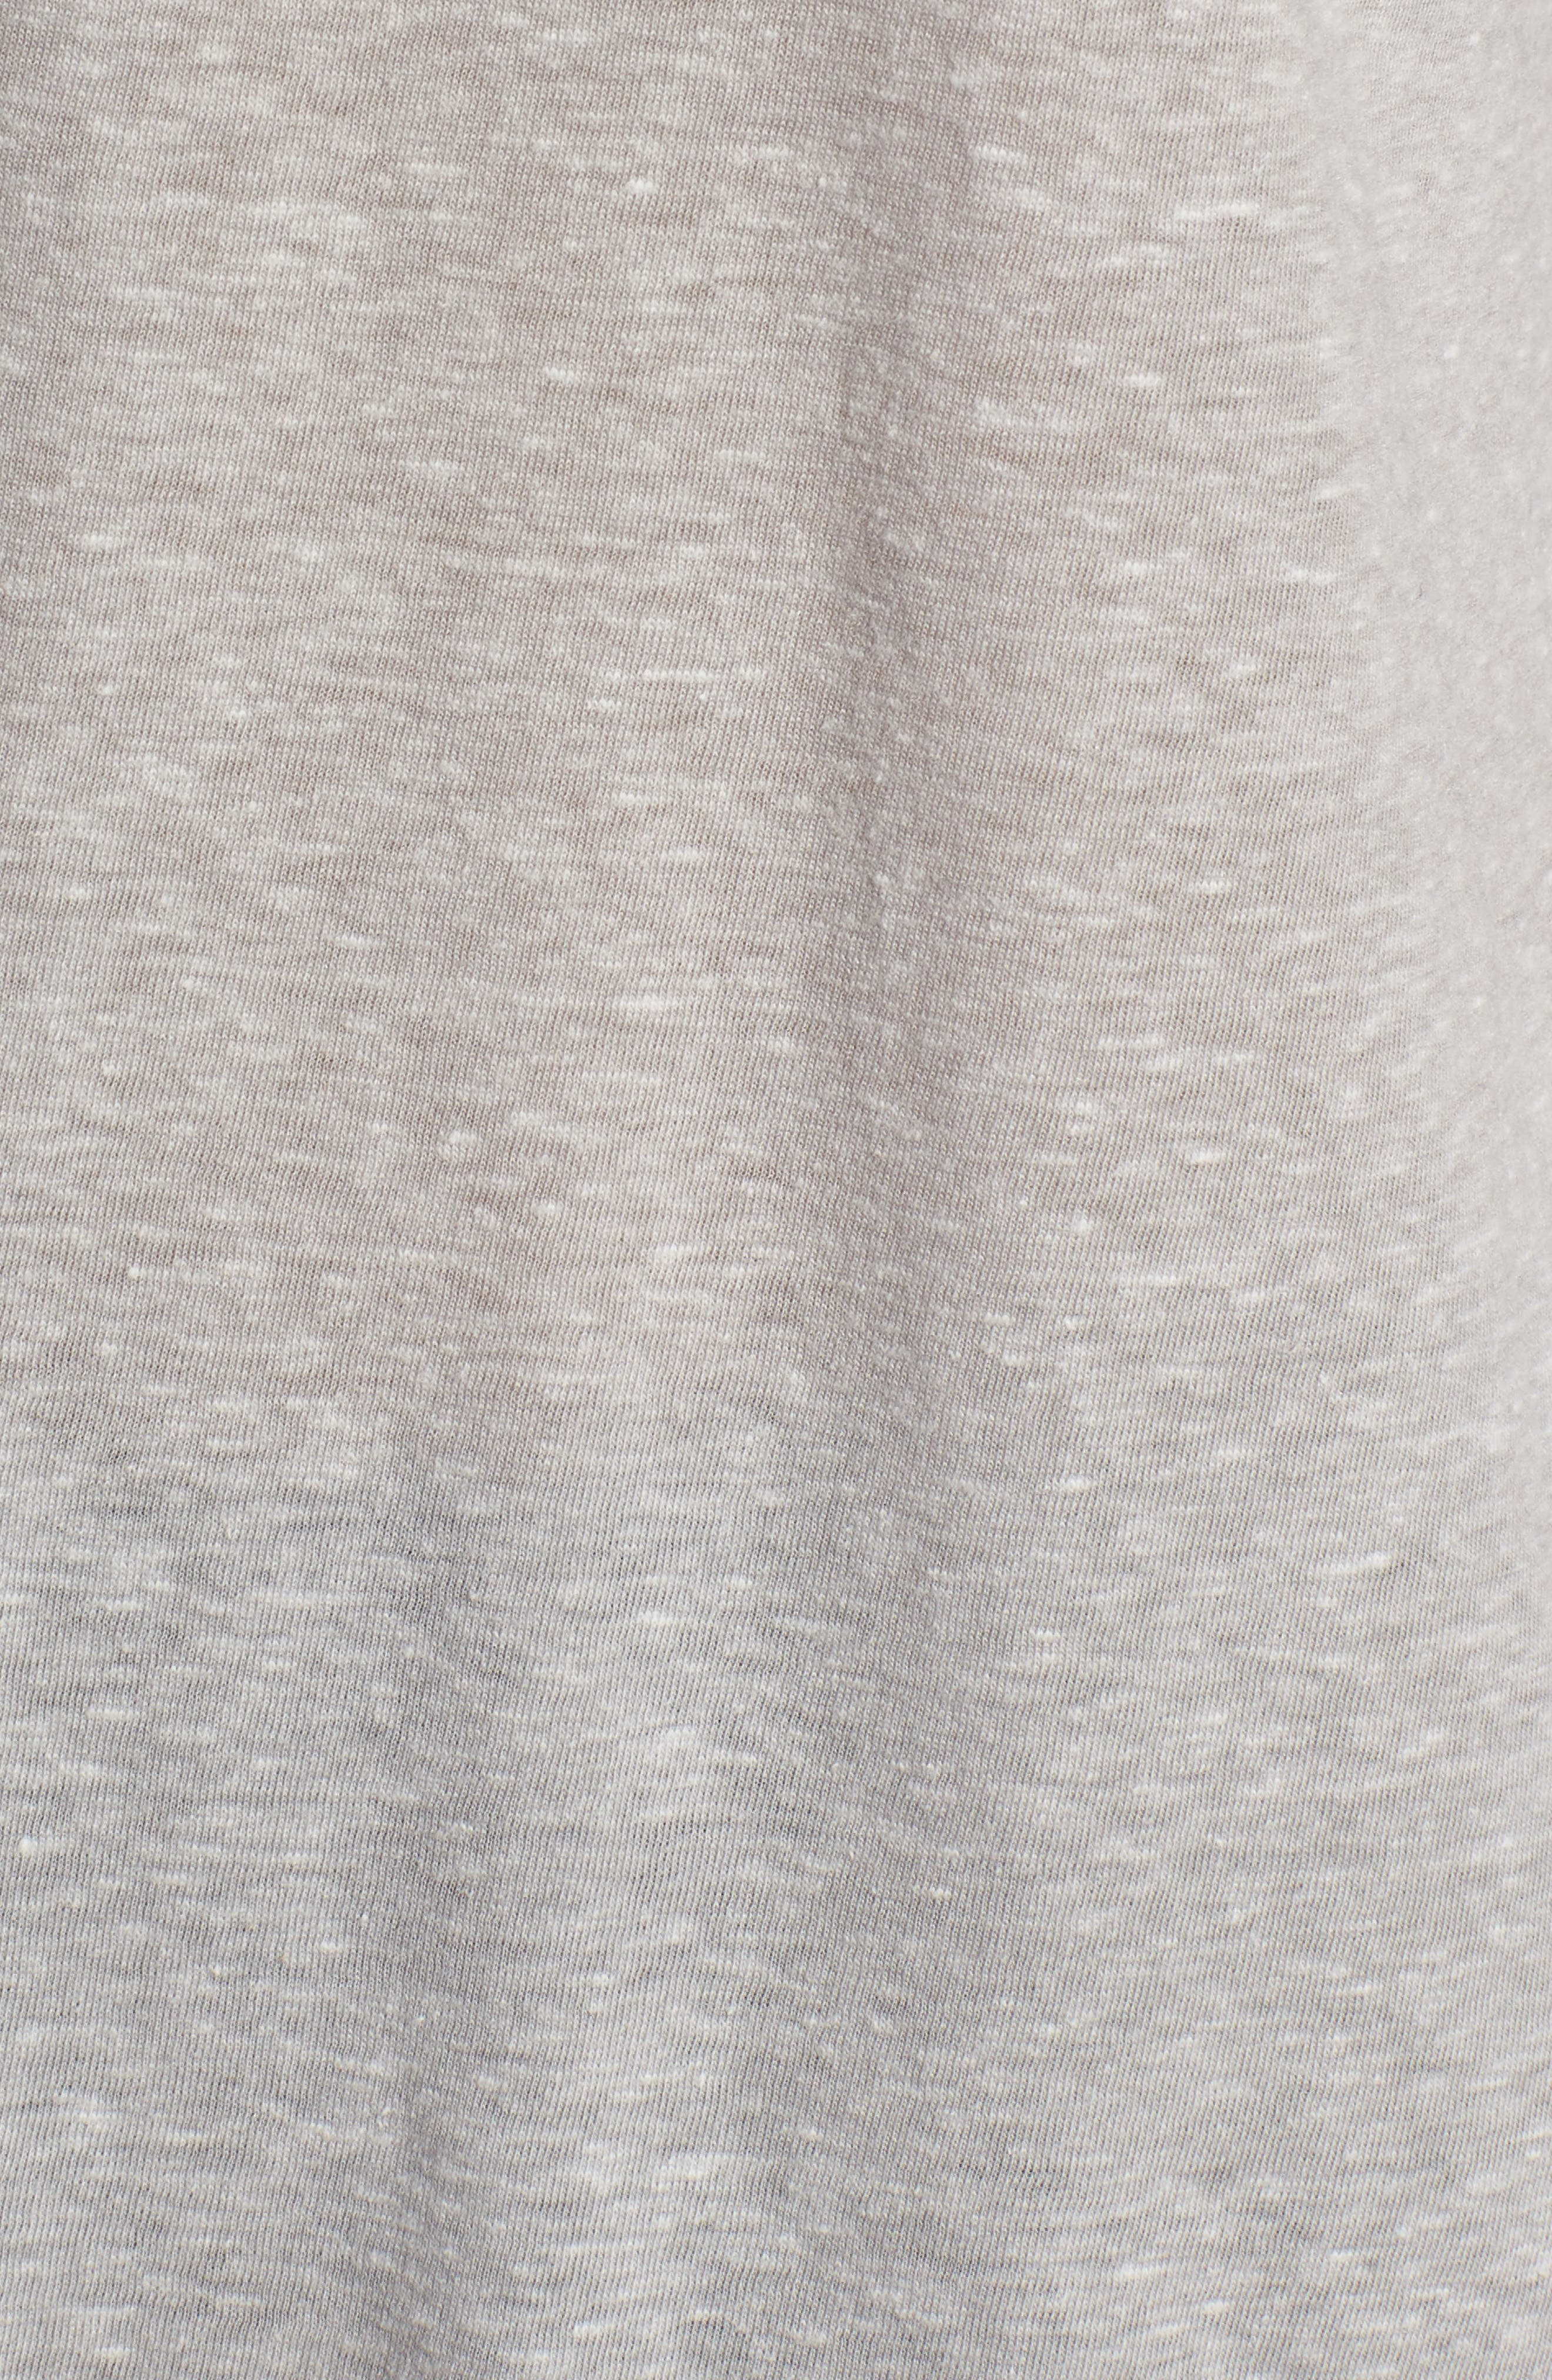 Sporty Tee,                             Alternate thumbnail 5, color,                             050